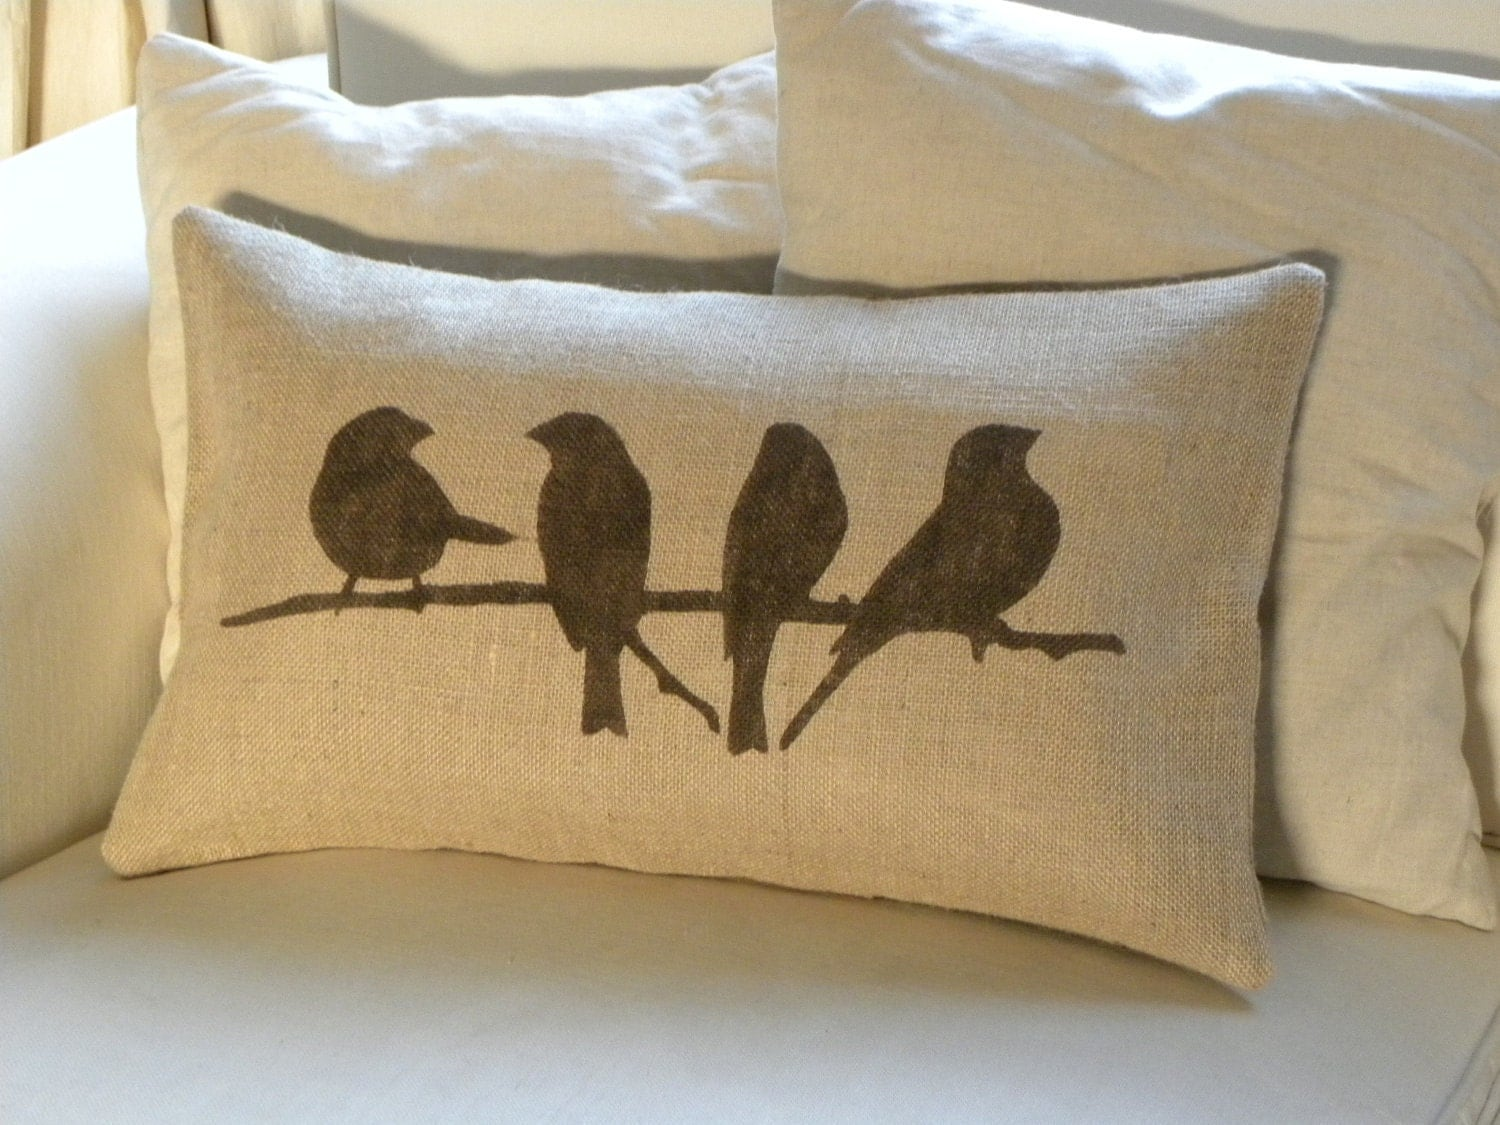 Modern Pillows Etsy : Birds on branch burlap hessian pillow cushion cover by TheNestUK